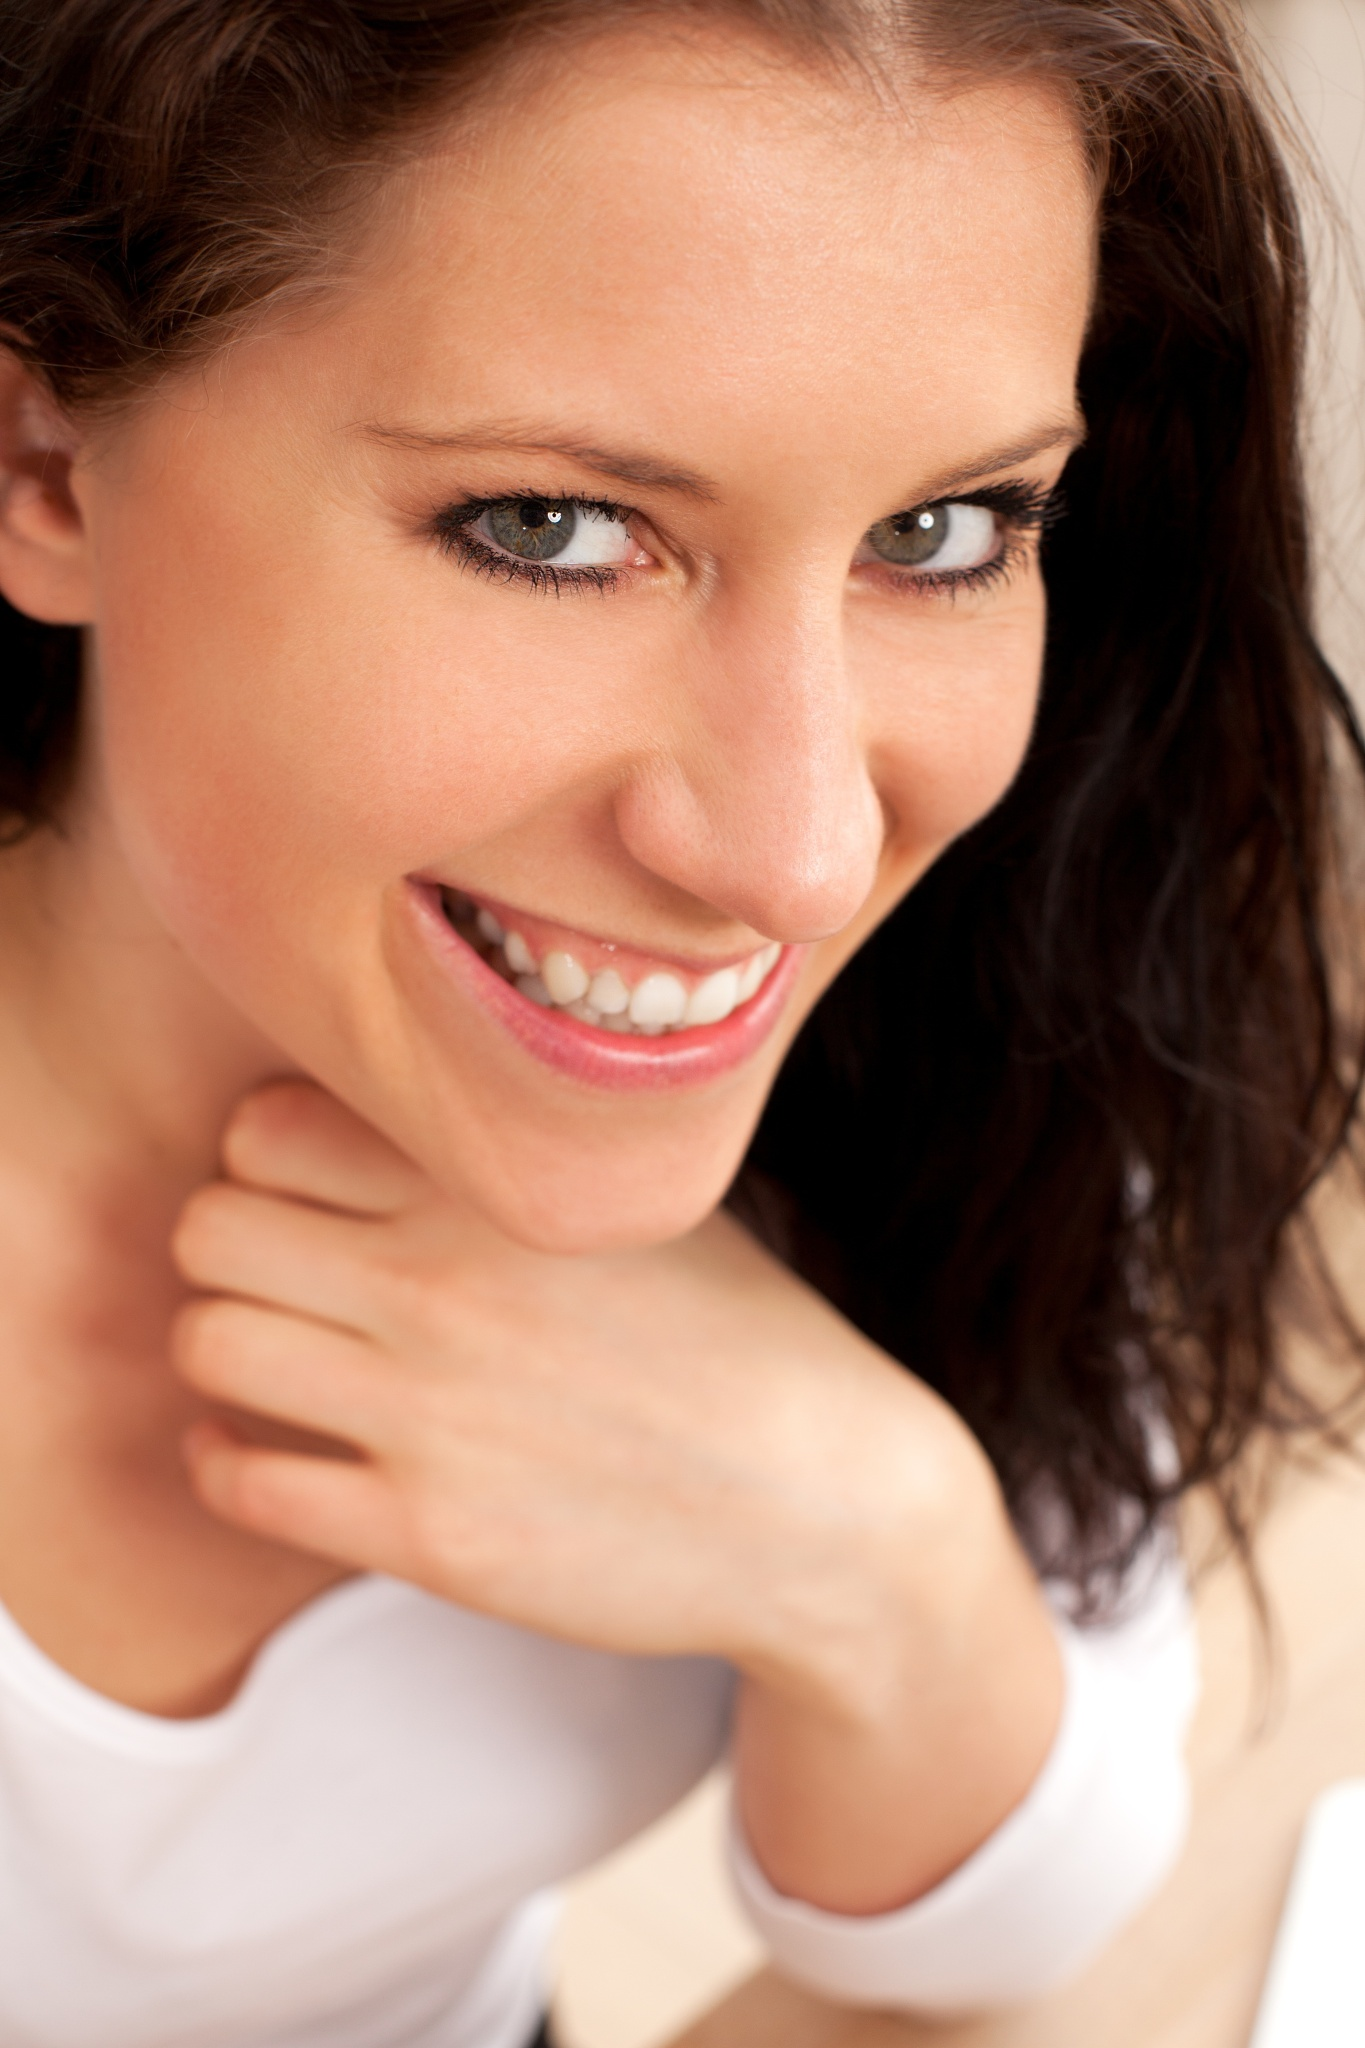 Dental implants in Clifton